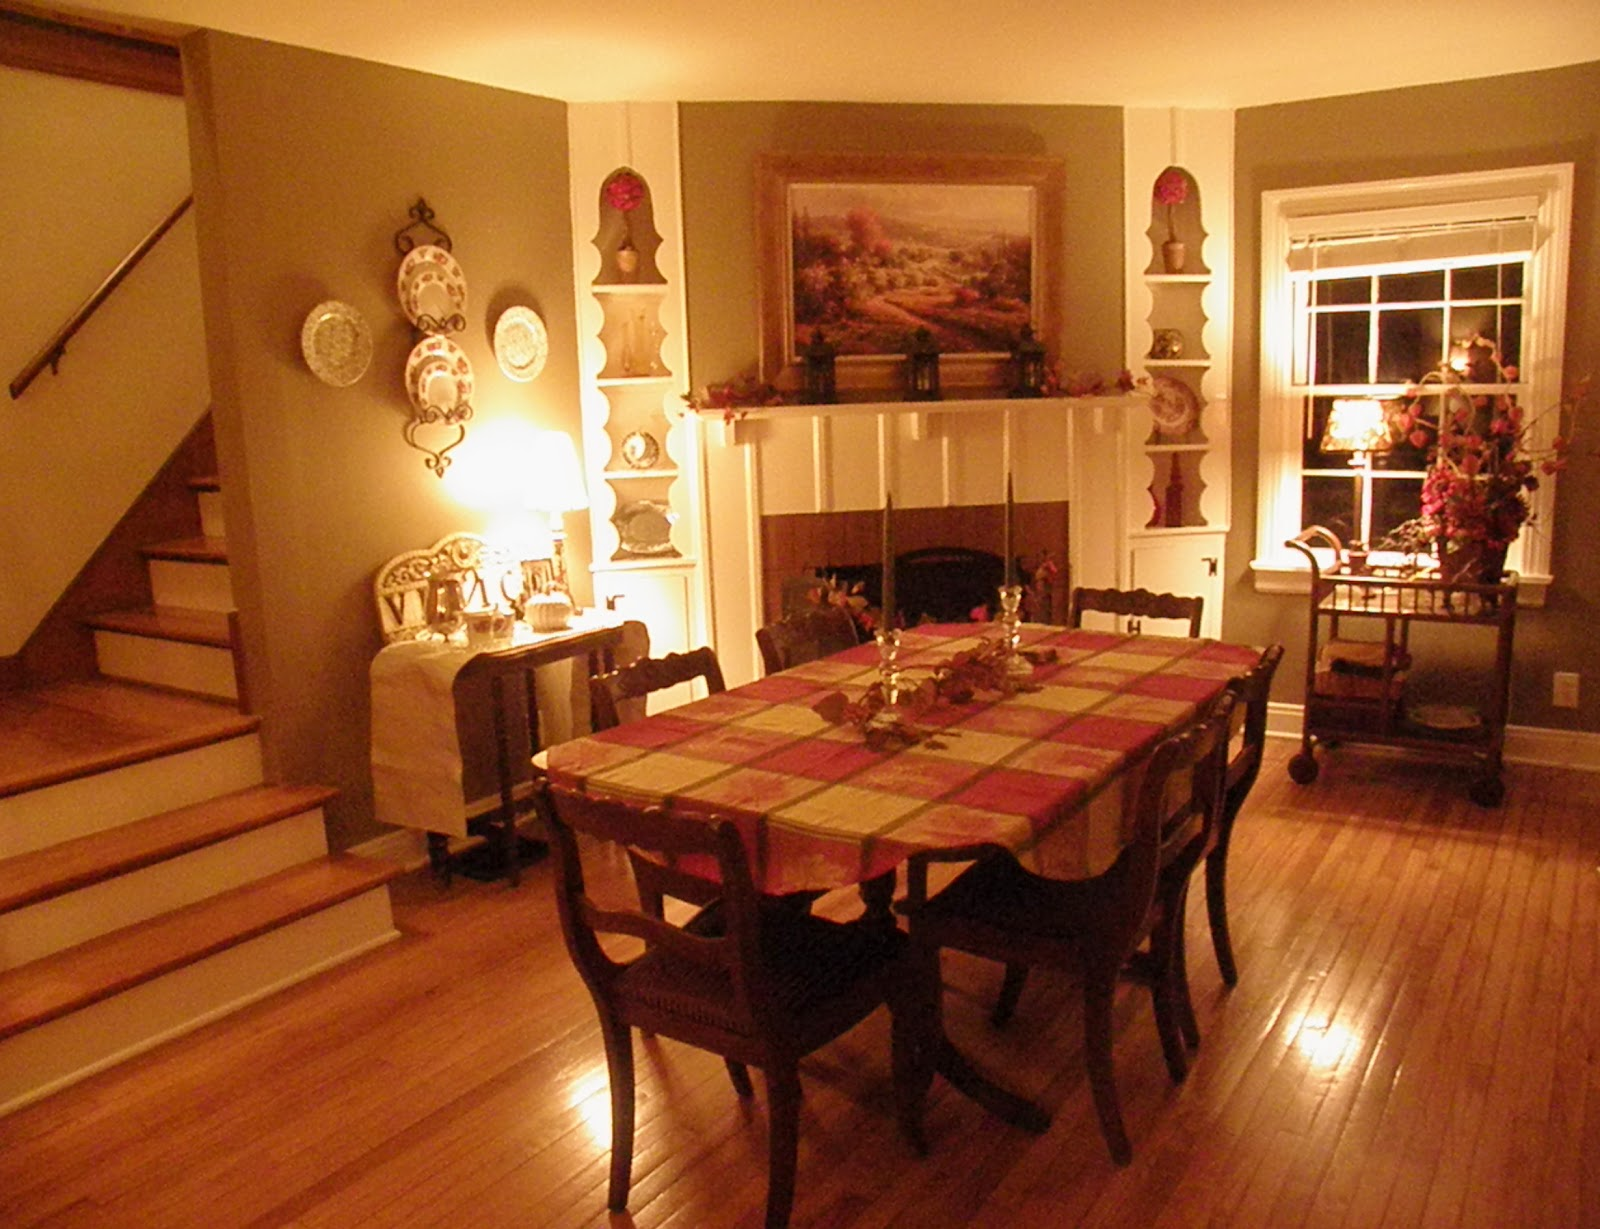 Cozy Dining Space: The Cozy Little Kitchen: An Autumn Dining Room & Mr. Cozy